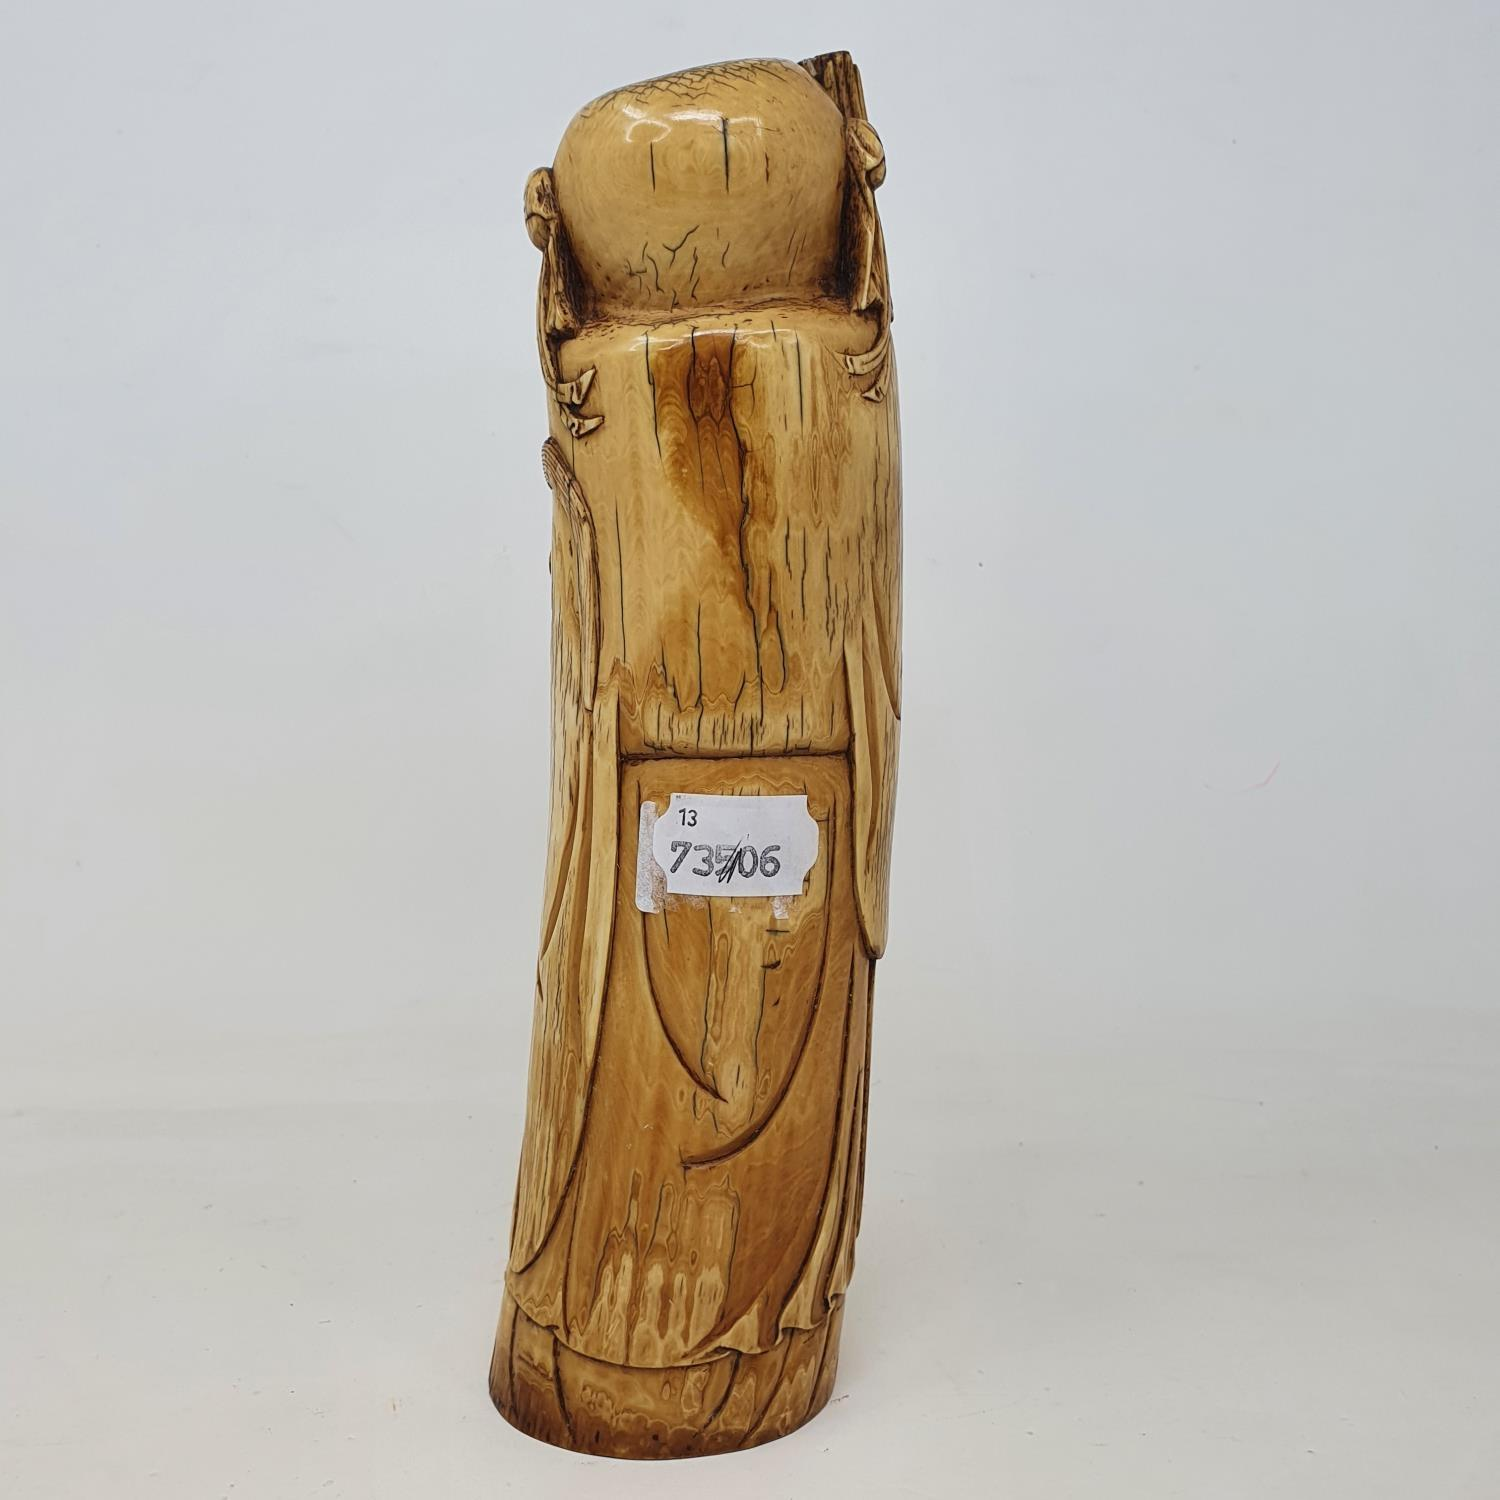 An early 20th century Chinese ivory tusk, carved in the form of Shou Lao, 28 cm high - Image 4 of 5